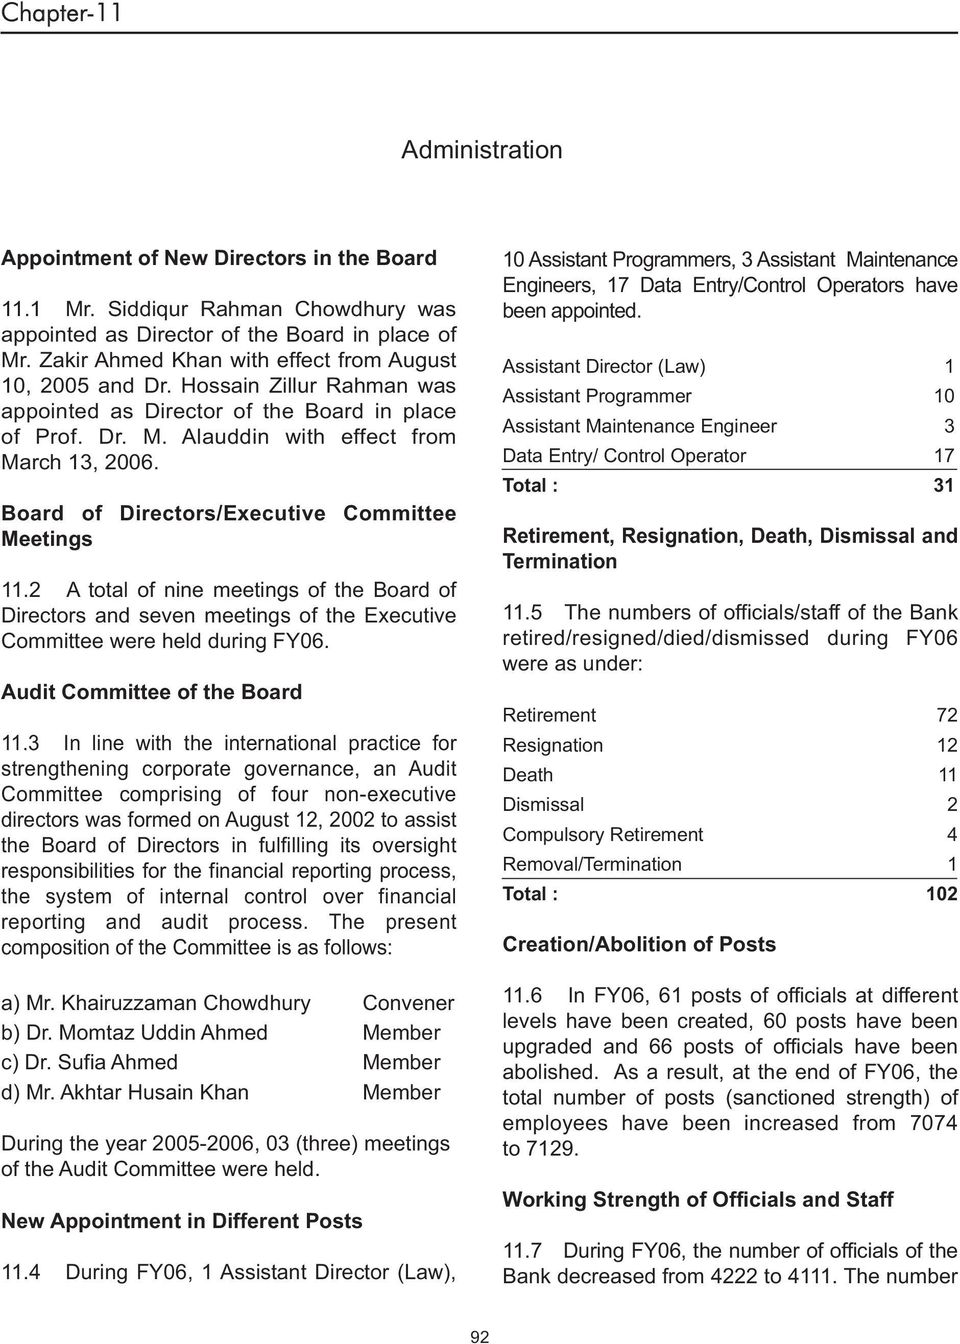 Administration  Chapter-11  Appointment of New Directors in